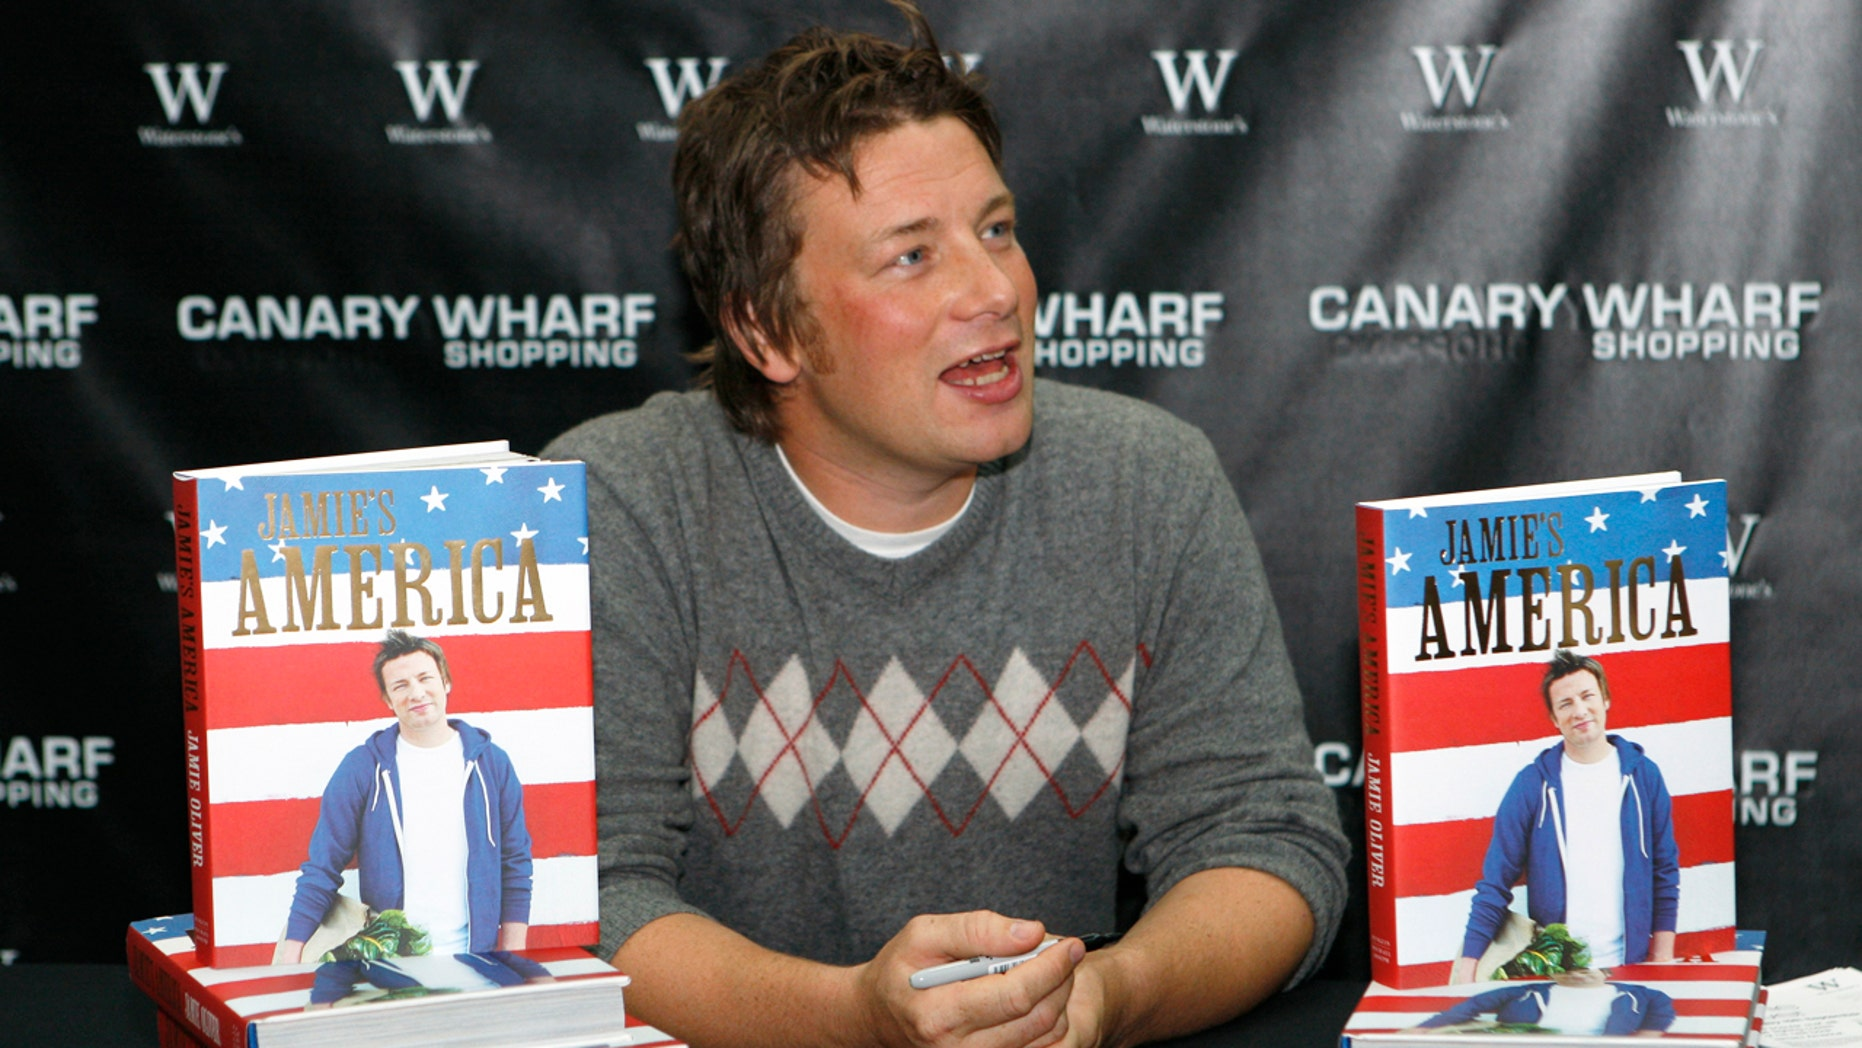 Citing financial difficulties post-Brexit, The Jamie Oliver Restaurant Group said Friday that it's shuttering six restaurants in the U.K.